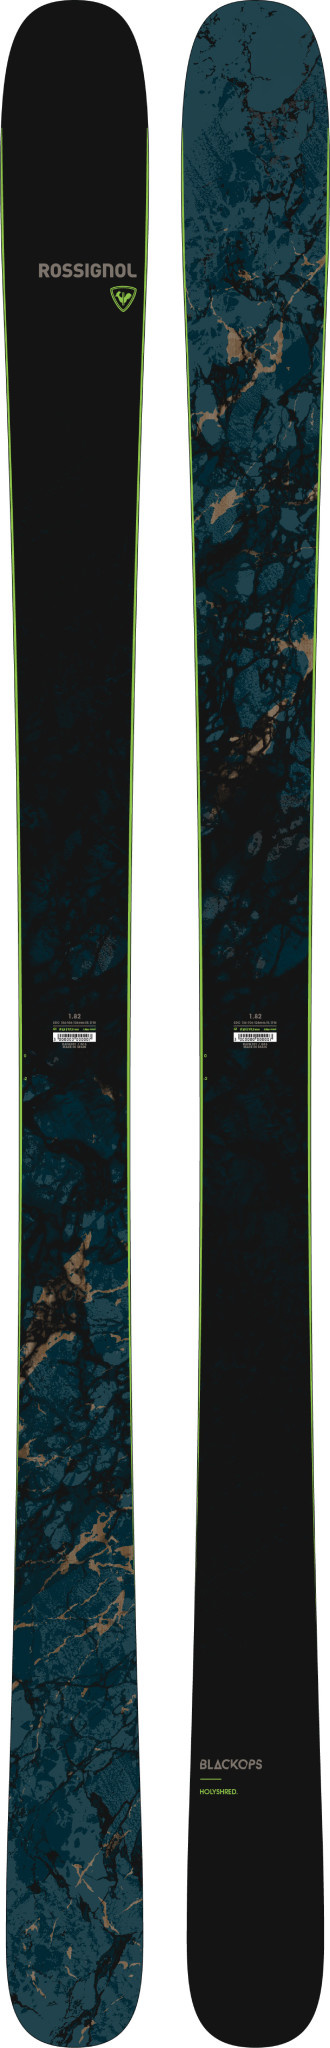 Rossignol Blackops Holyshred-1